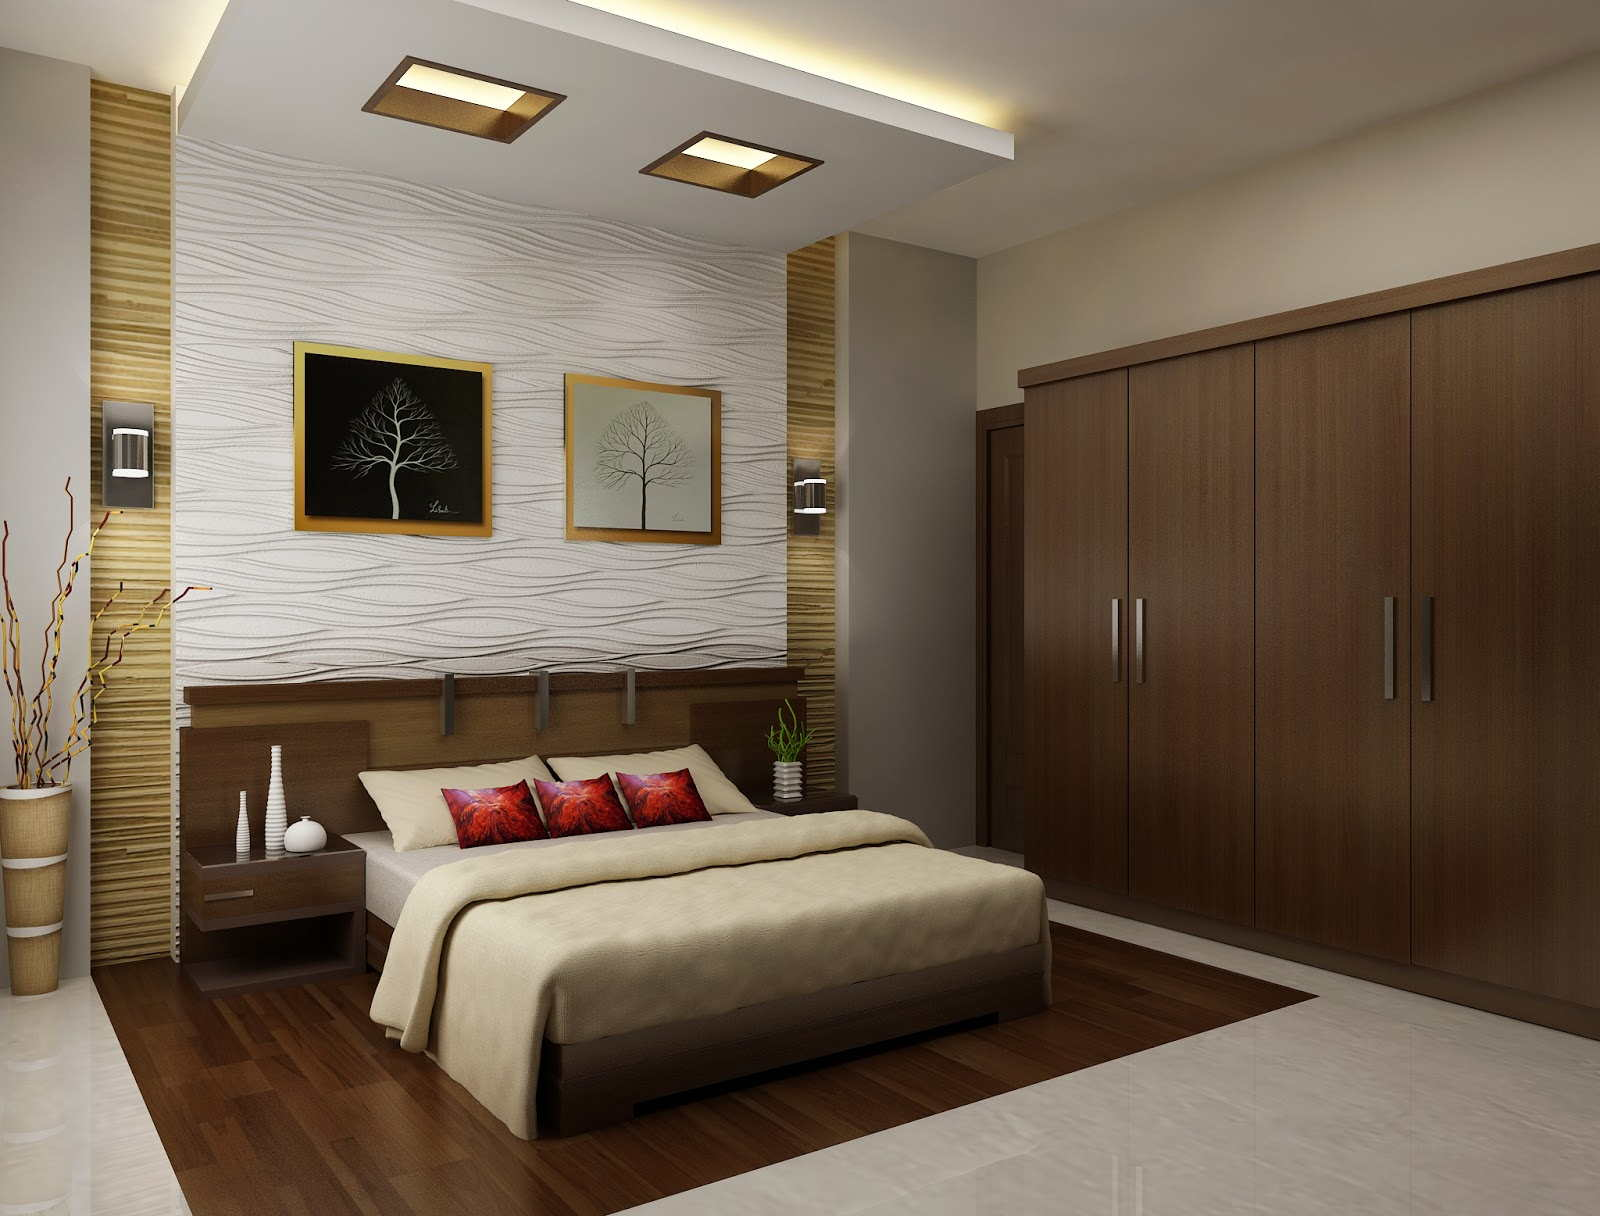 11 Attractive bedroom design ideas that will make your ... on Model Bedroom Ideas  id=20369